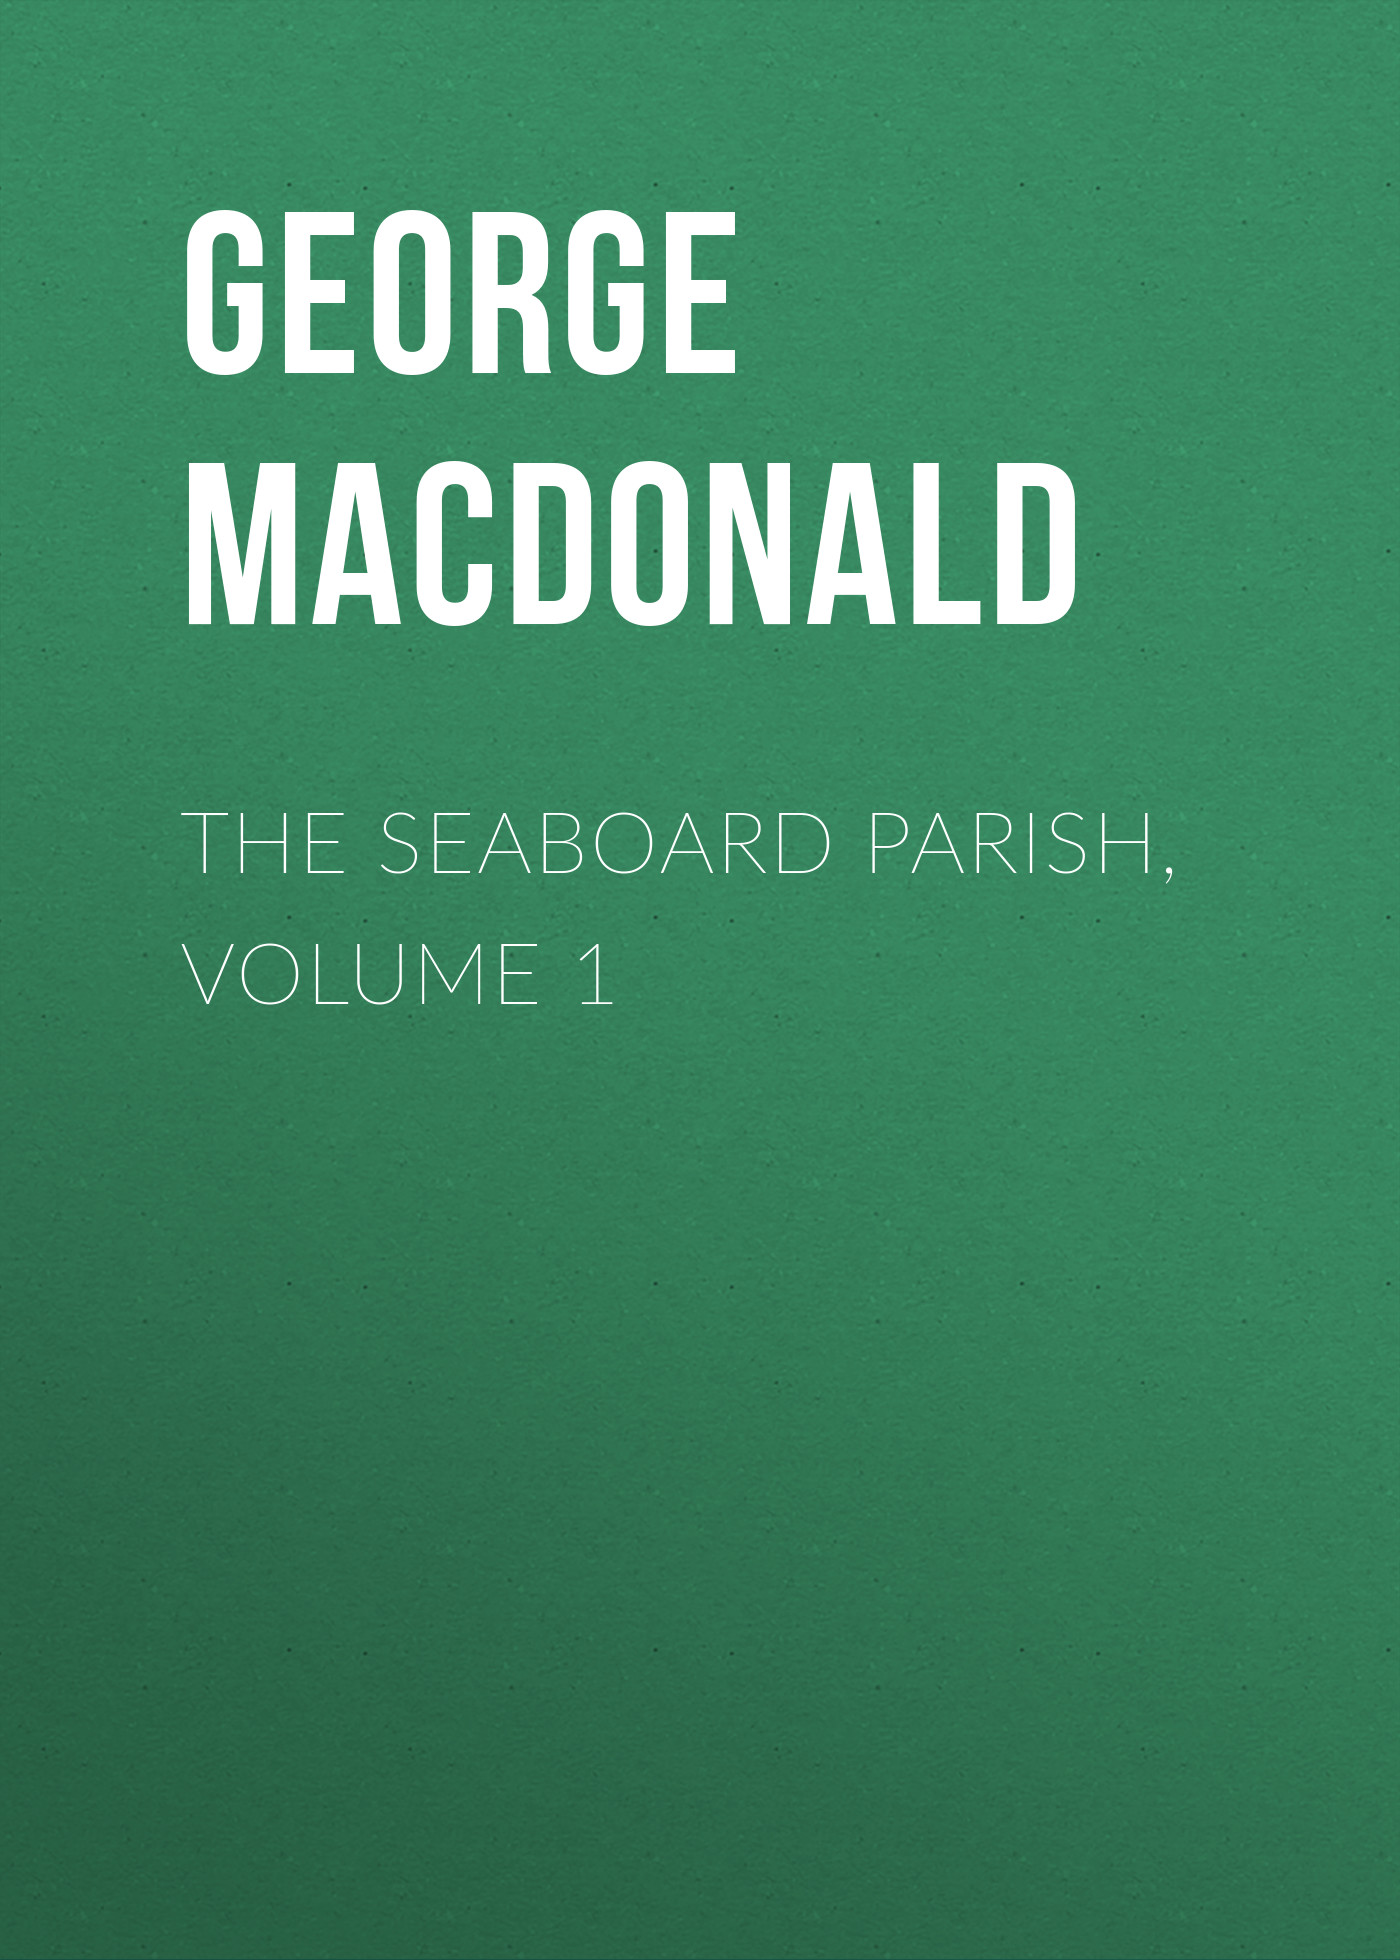 George MacDonald The Seaboard Parish, Volume 1 george macdonald the seaboard parish volume 1